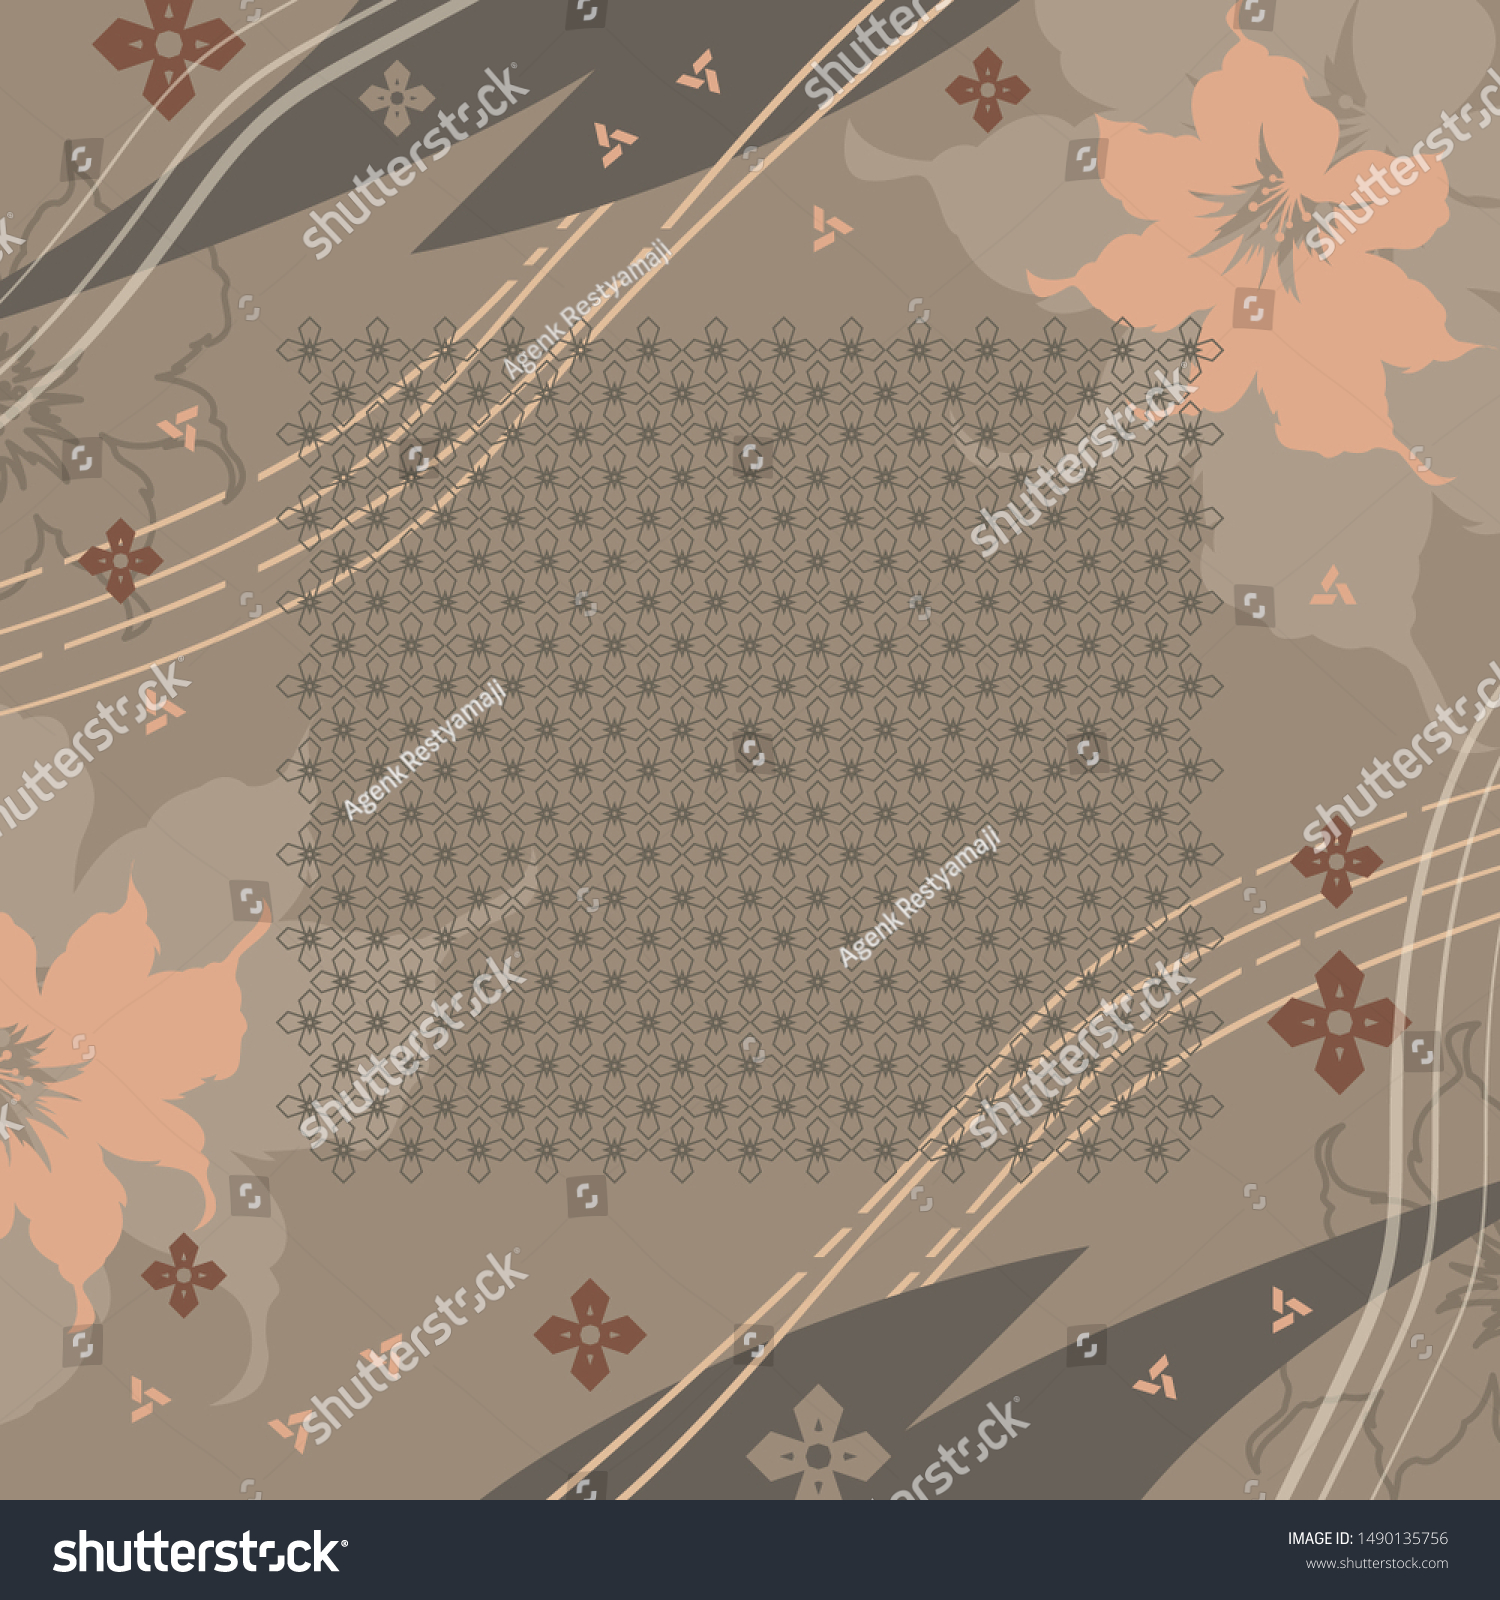 Hijab Design Flower Abstract Lines On Stock Vector (Royalty Free